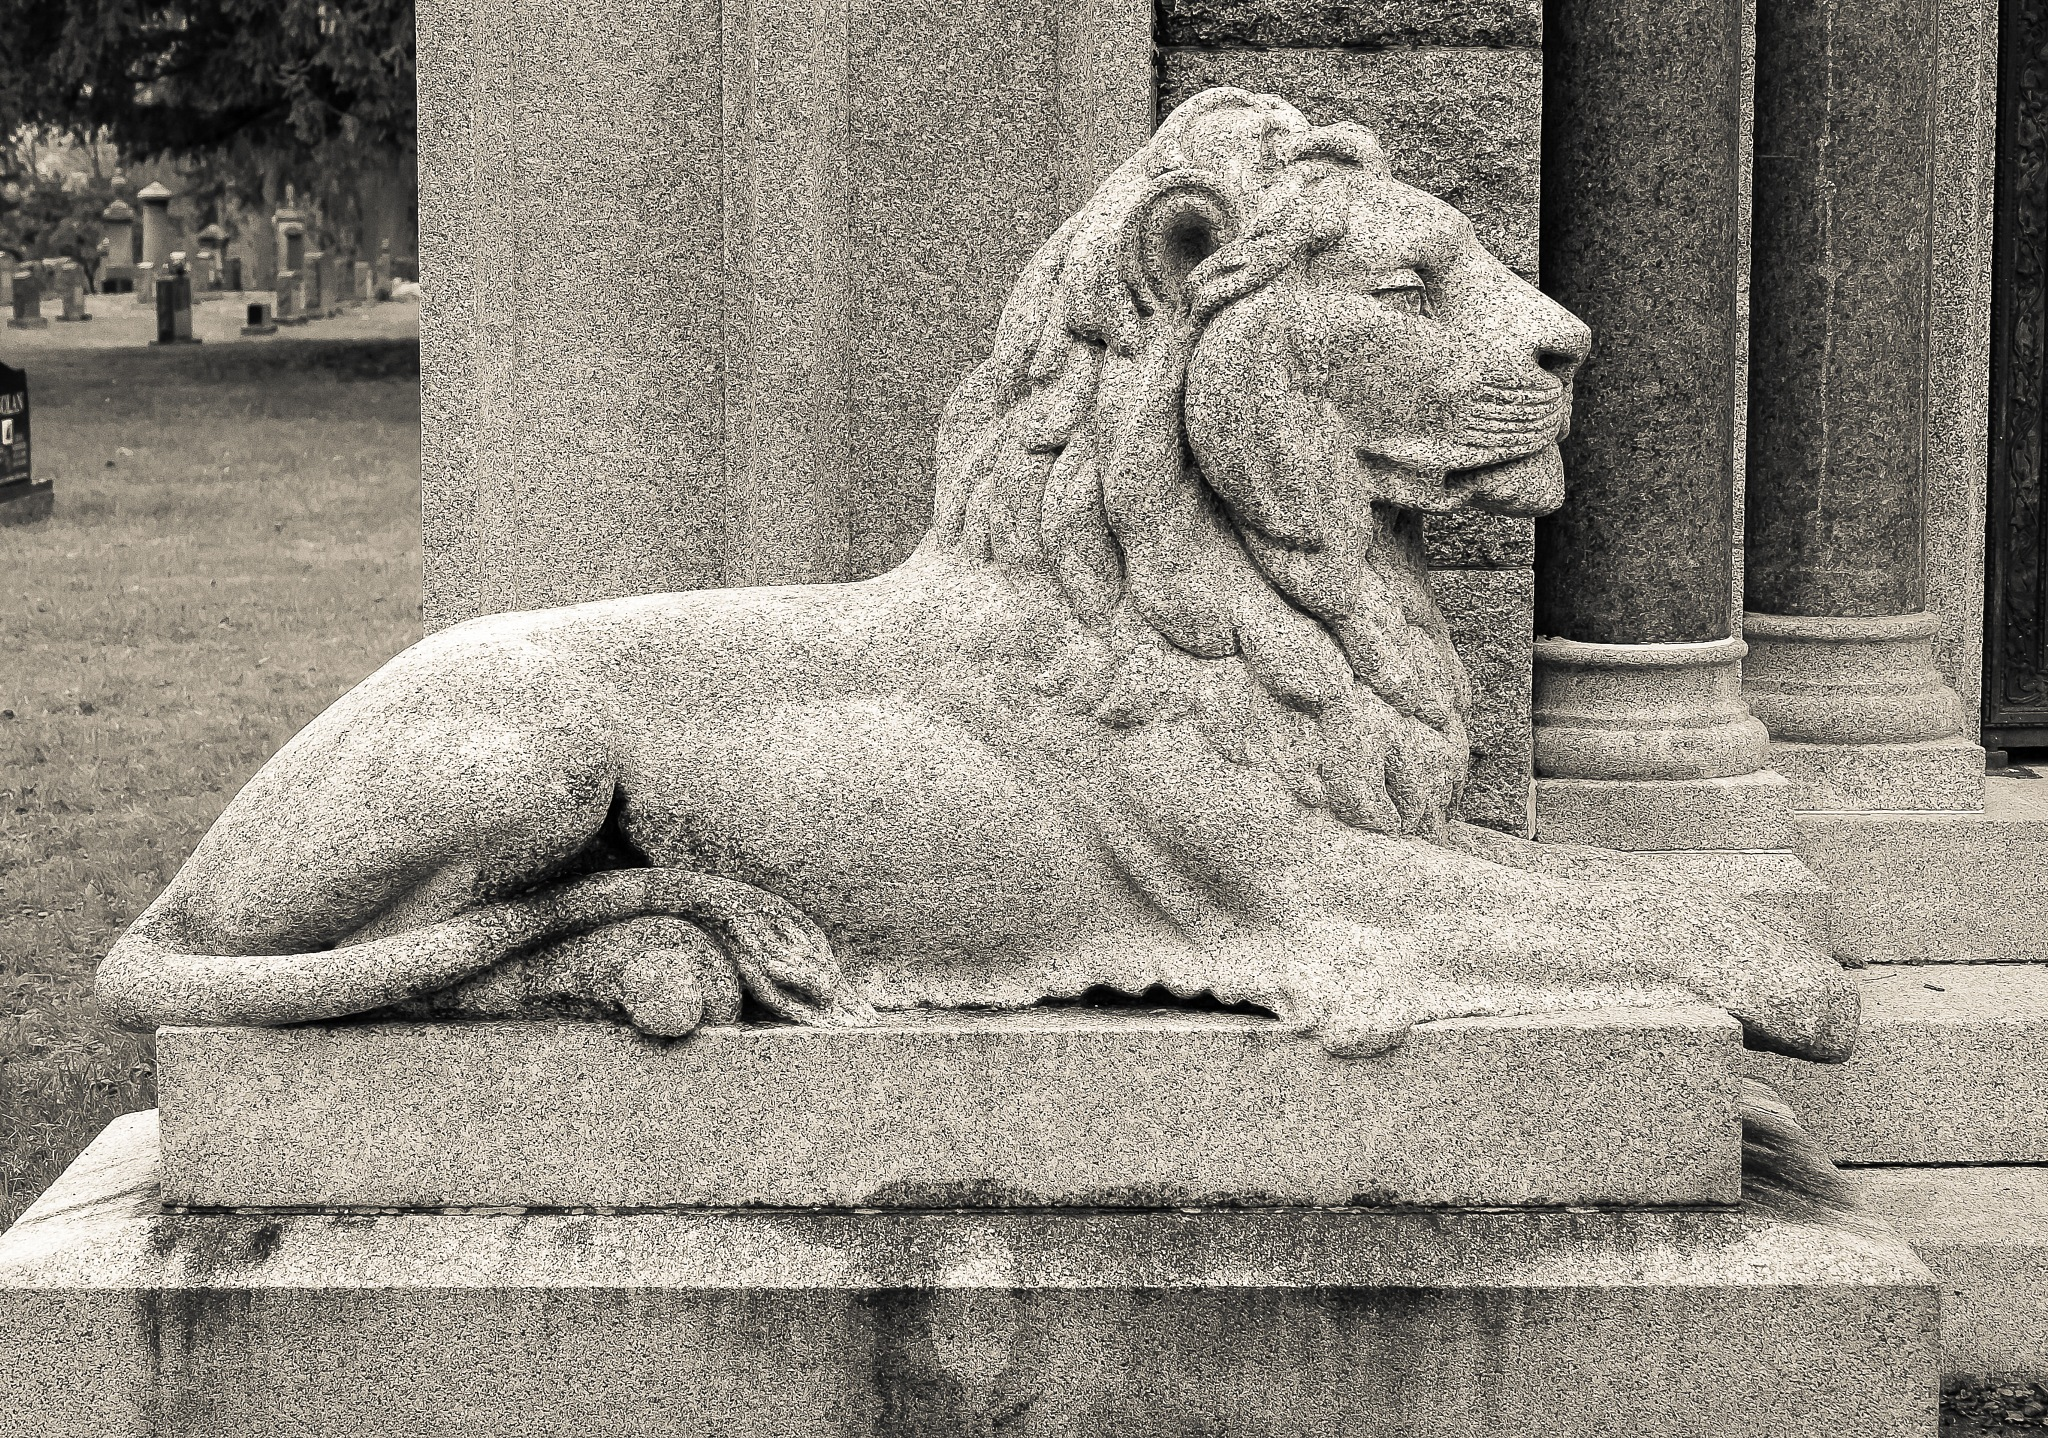 Cemetery Lion by Steve Struthers